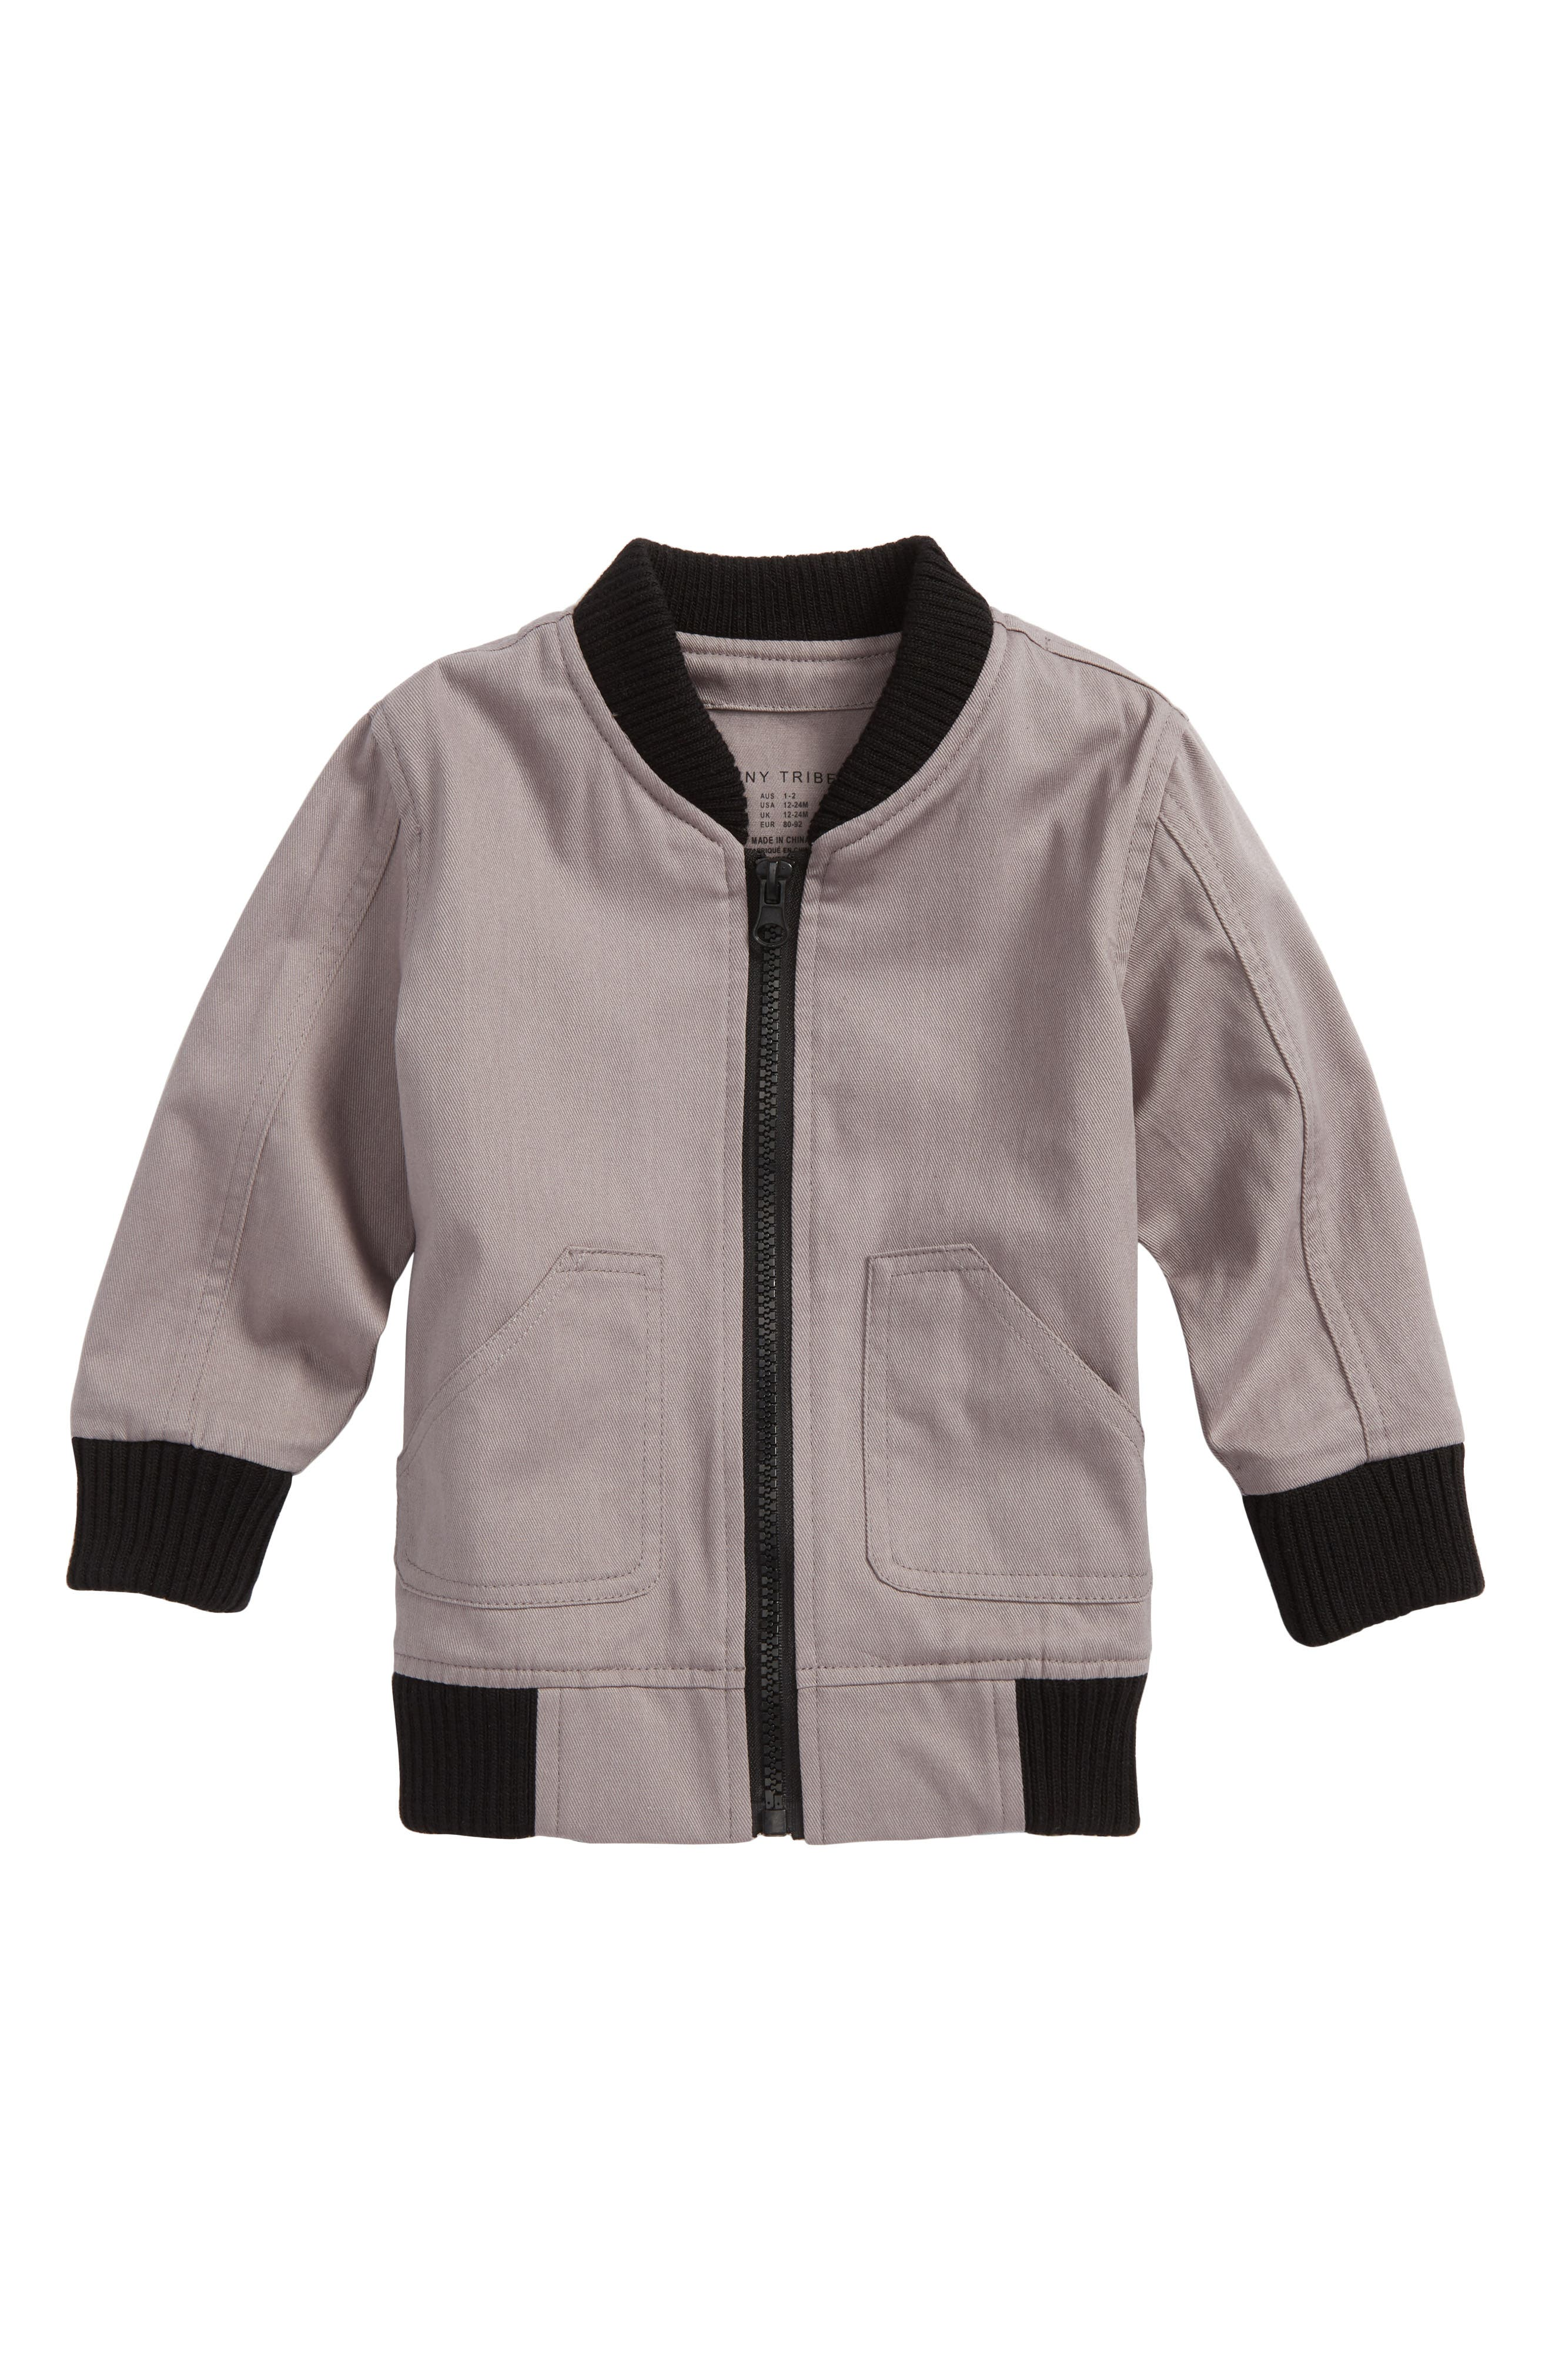 One Fine Apple Bomber Jacket,                         Main,                         color, 035